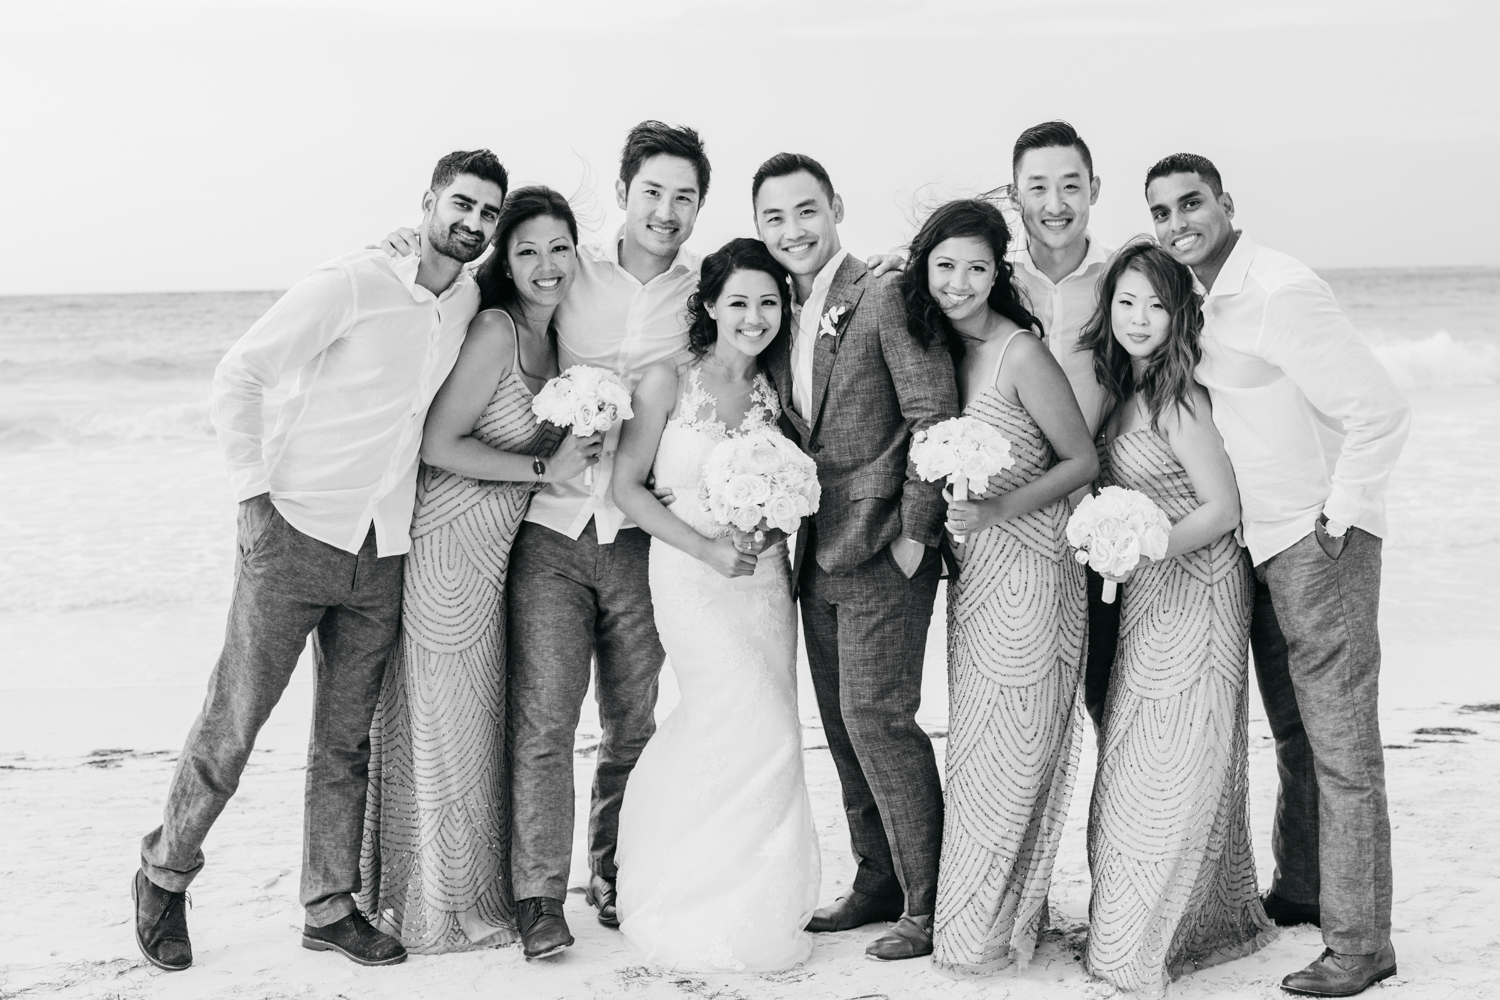 Bridal party photos at Royalton White Sands Resort in Jamaica